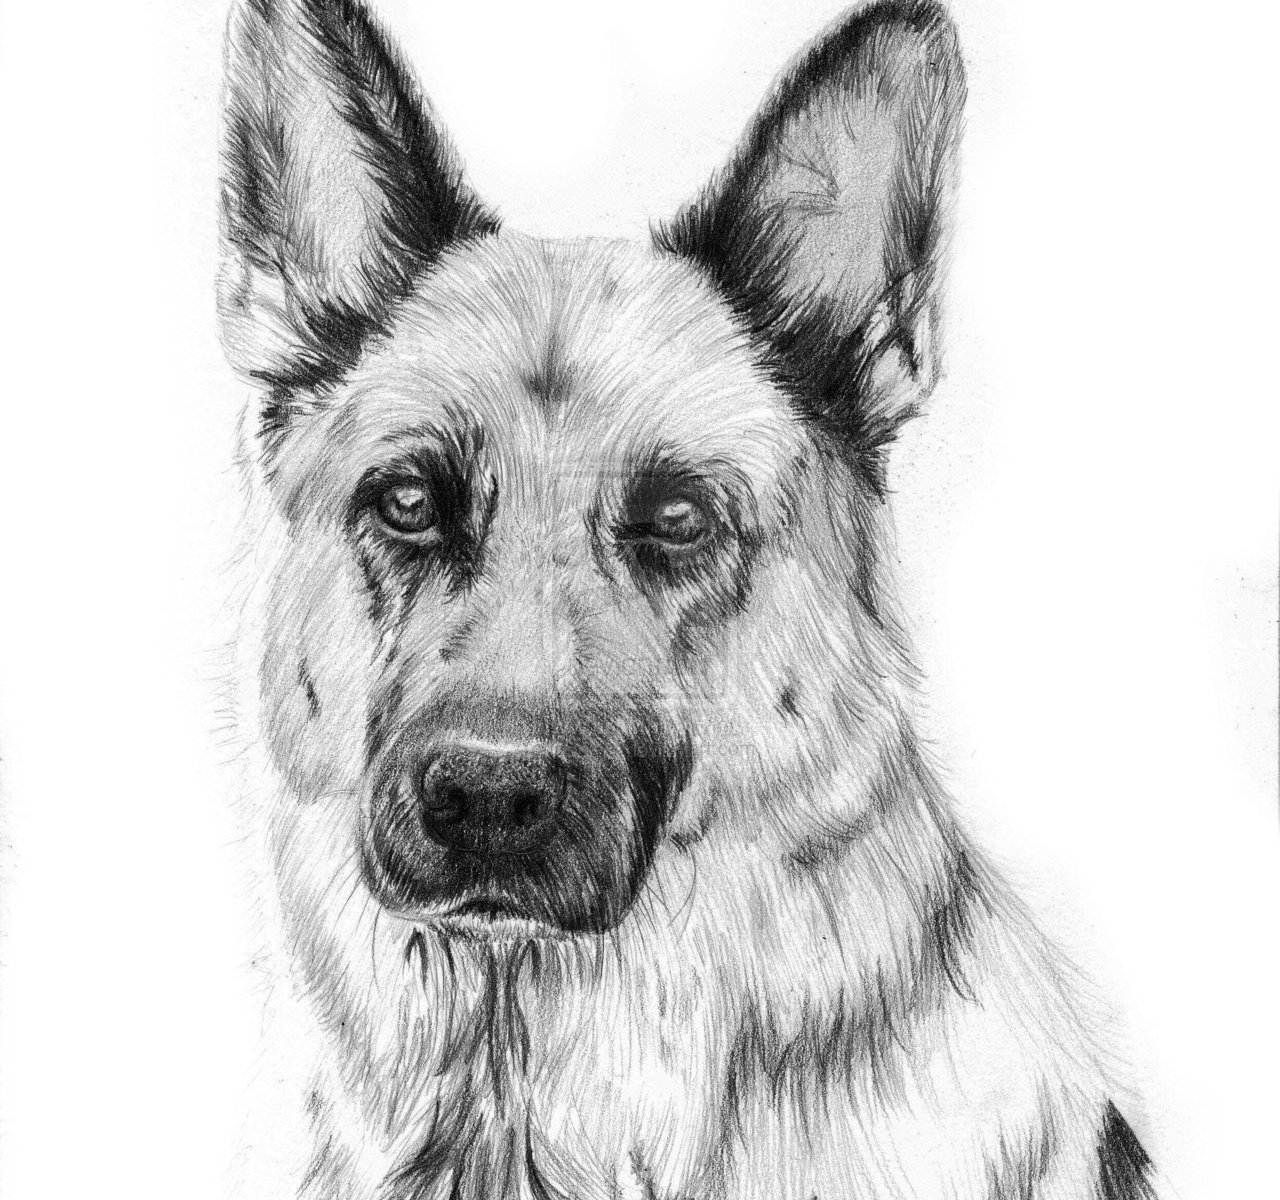 Learn To Draw A German Shepherd Puppy Dog Step By Step Easy For